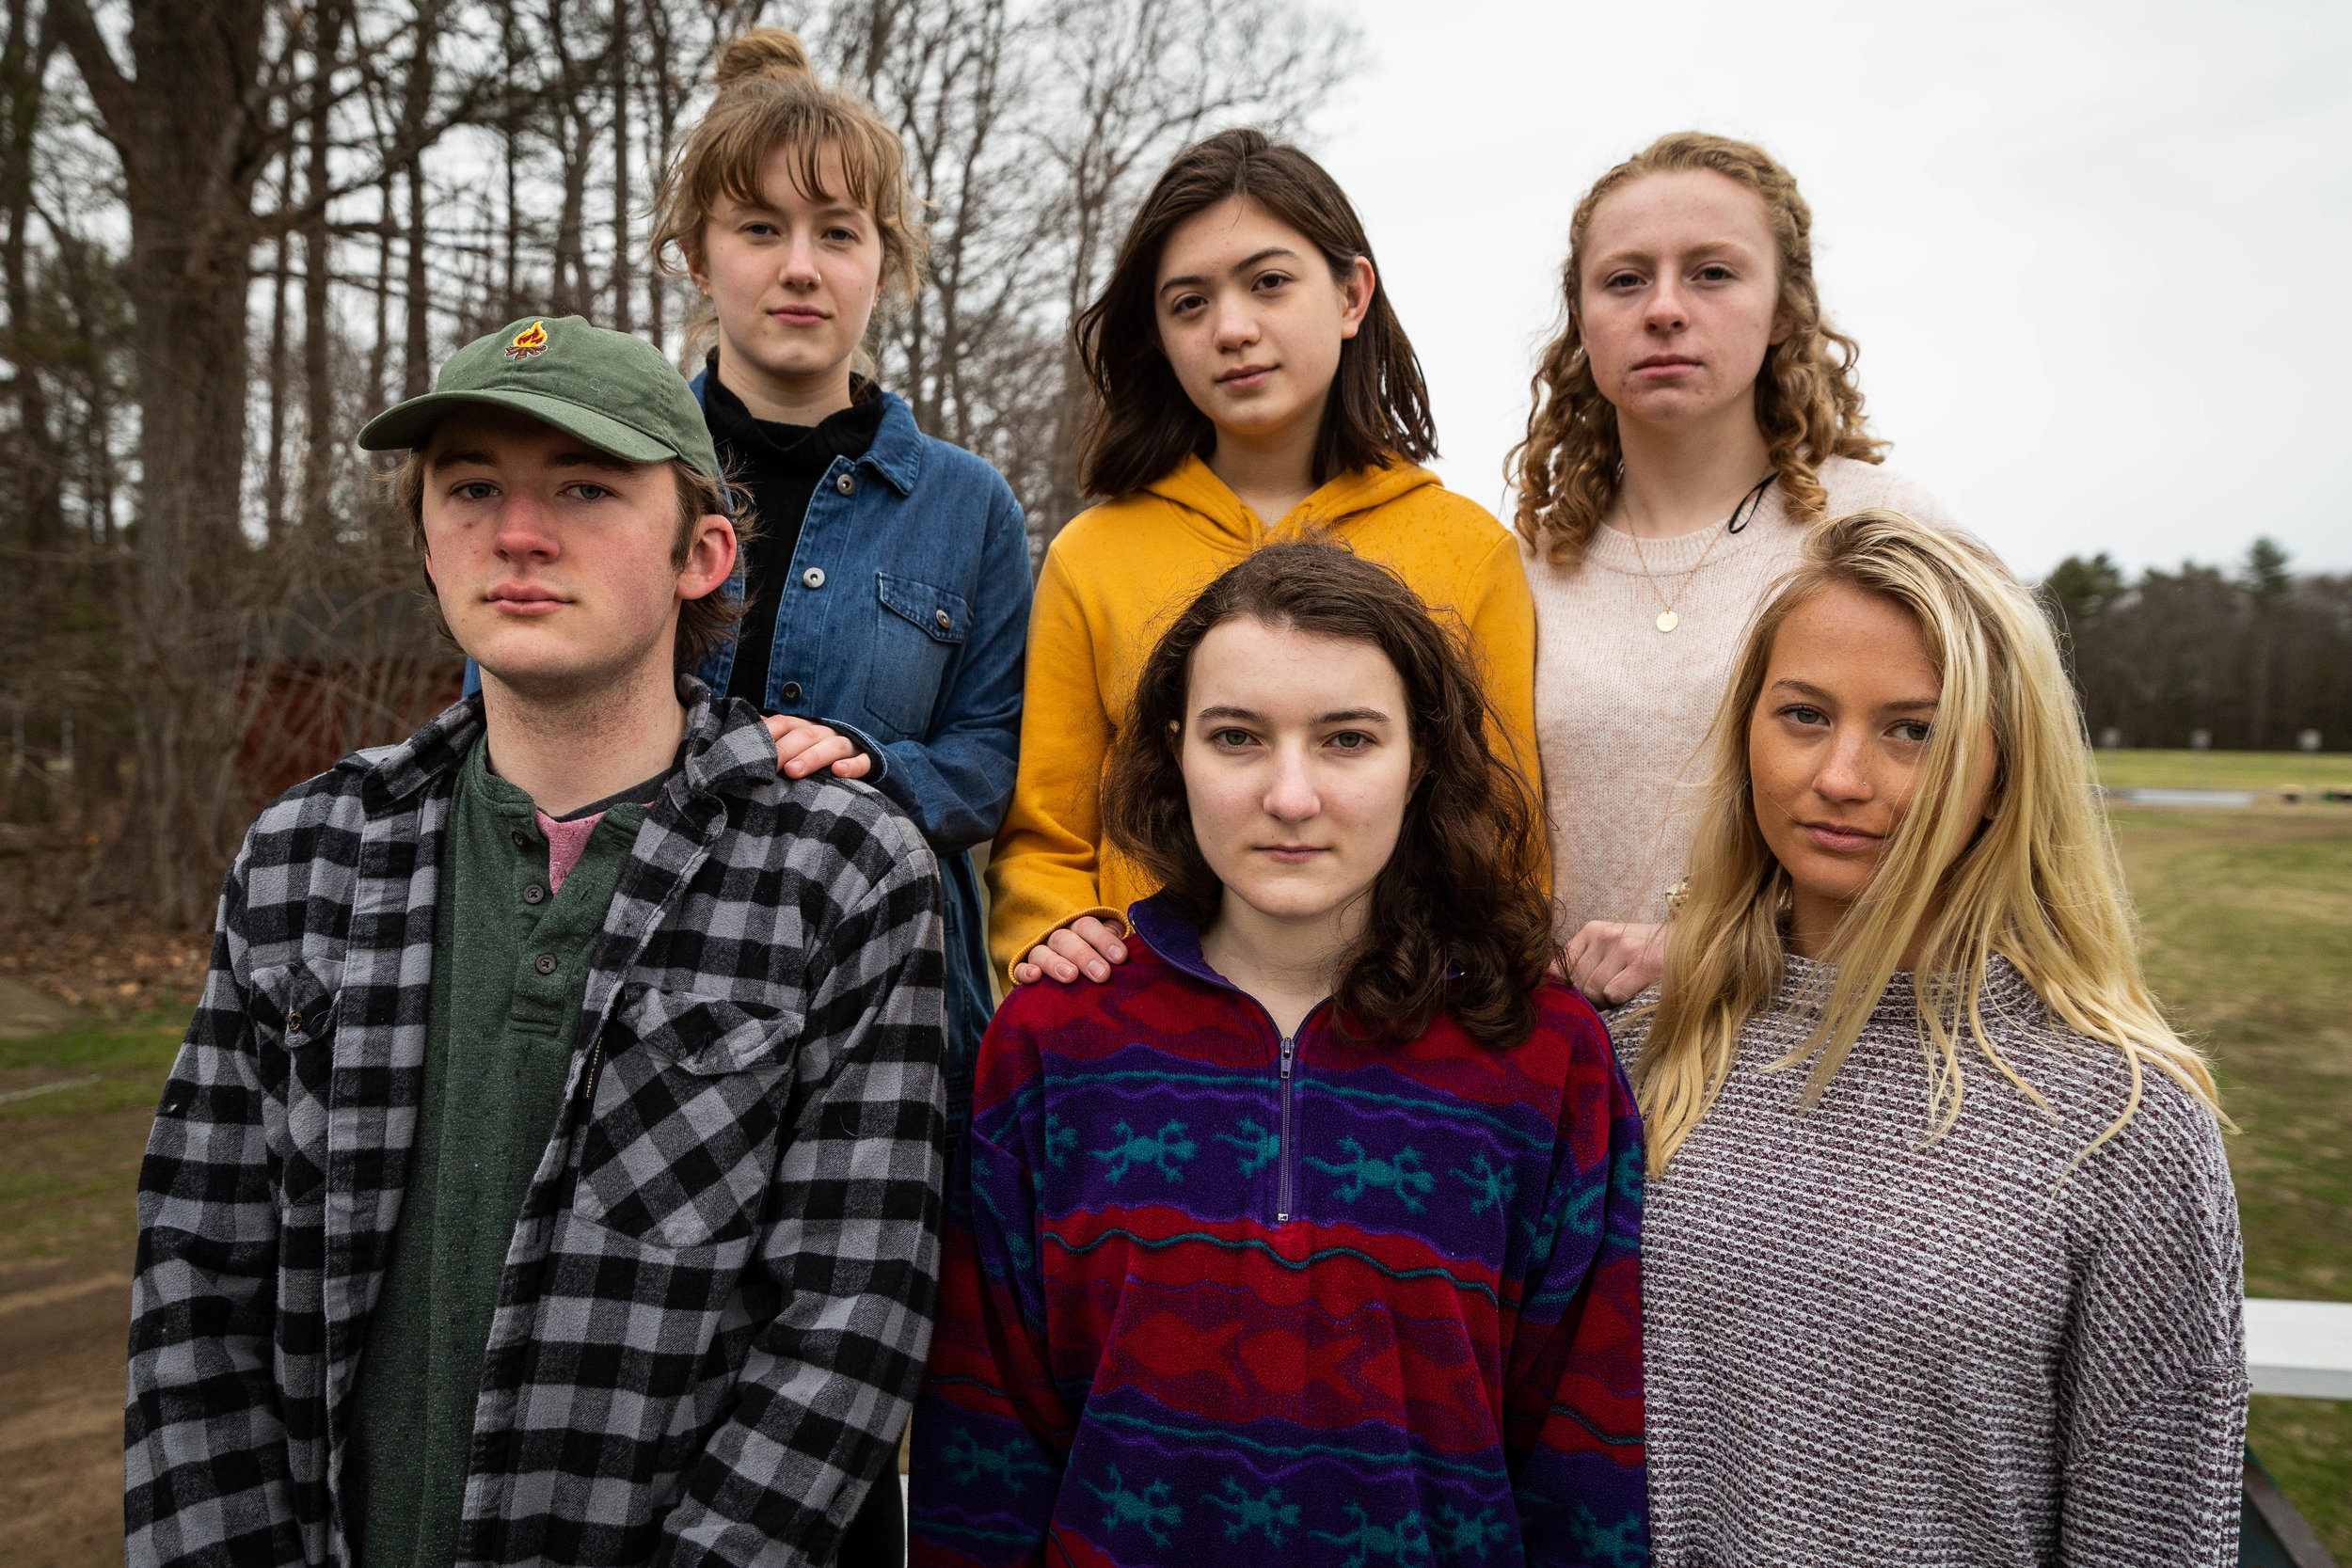 We Gotta Do Something - I reported this story about high school students working to combat racism in their majority-white community.Produced at the Salt Institute for Documentary Studies. Photography by Brooke Saias.